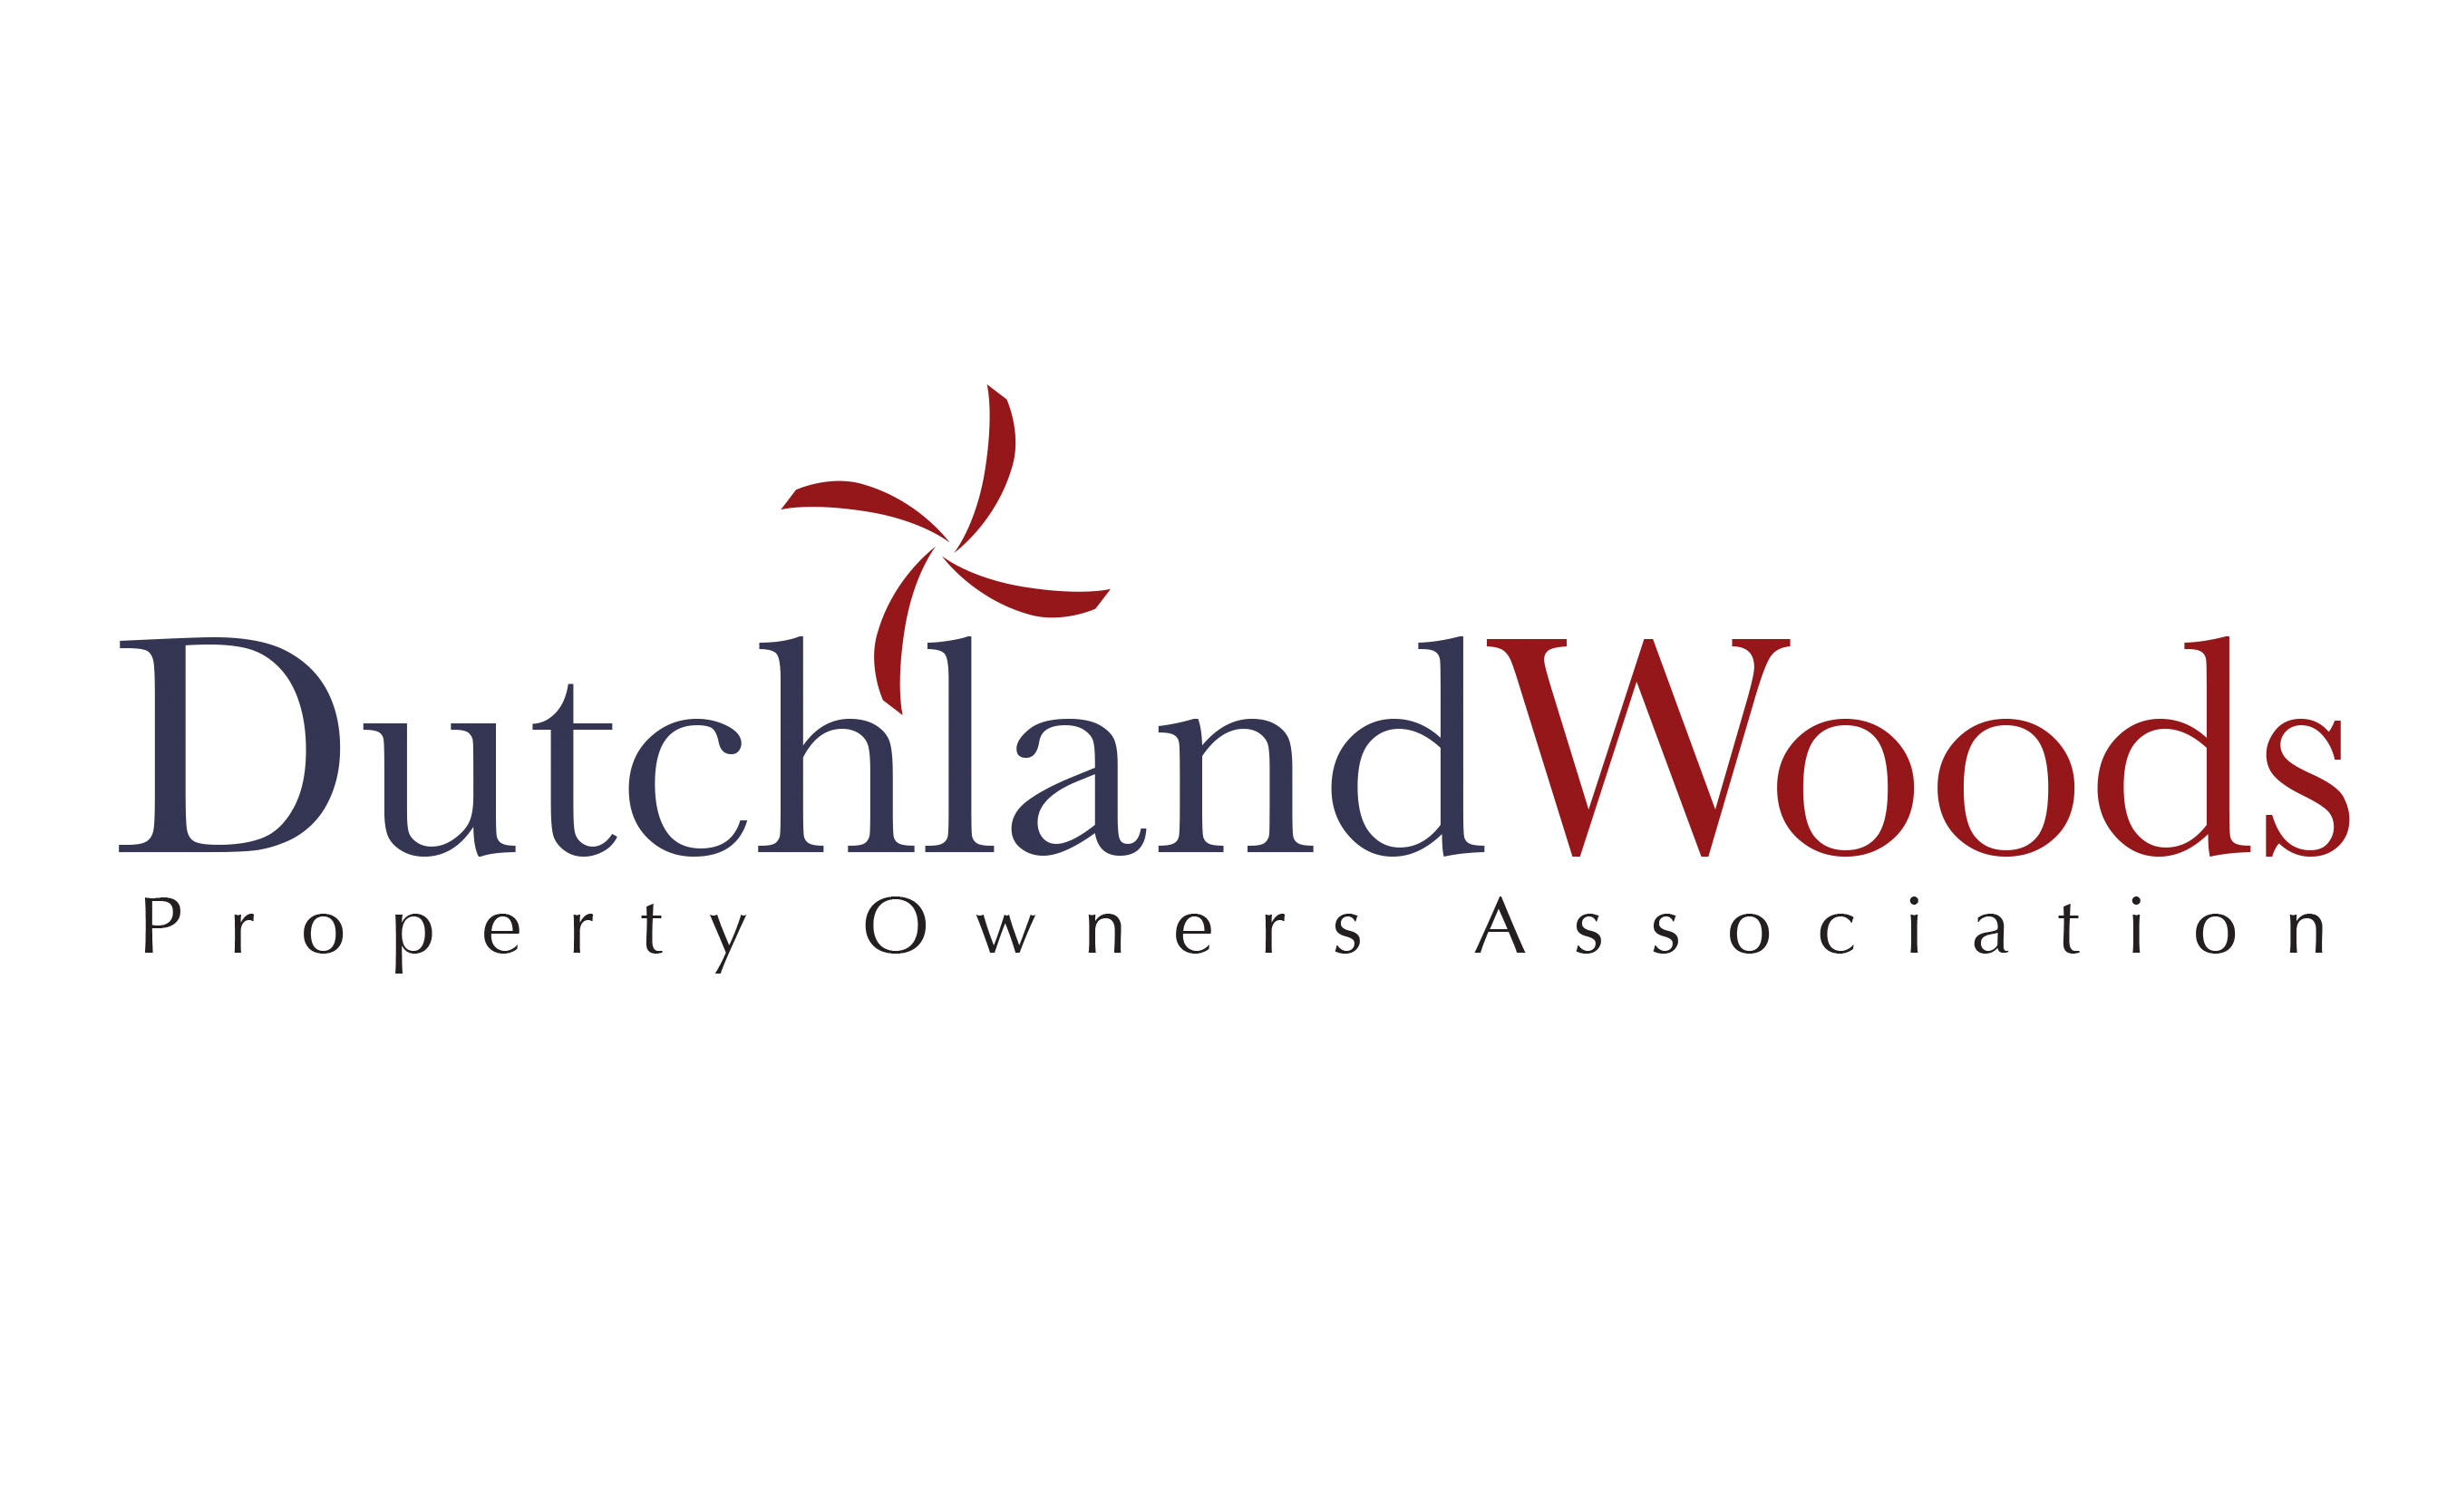 Dutchland Woods Property Owners Association